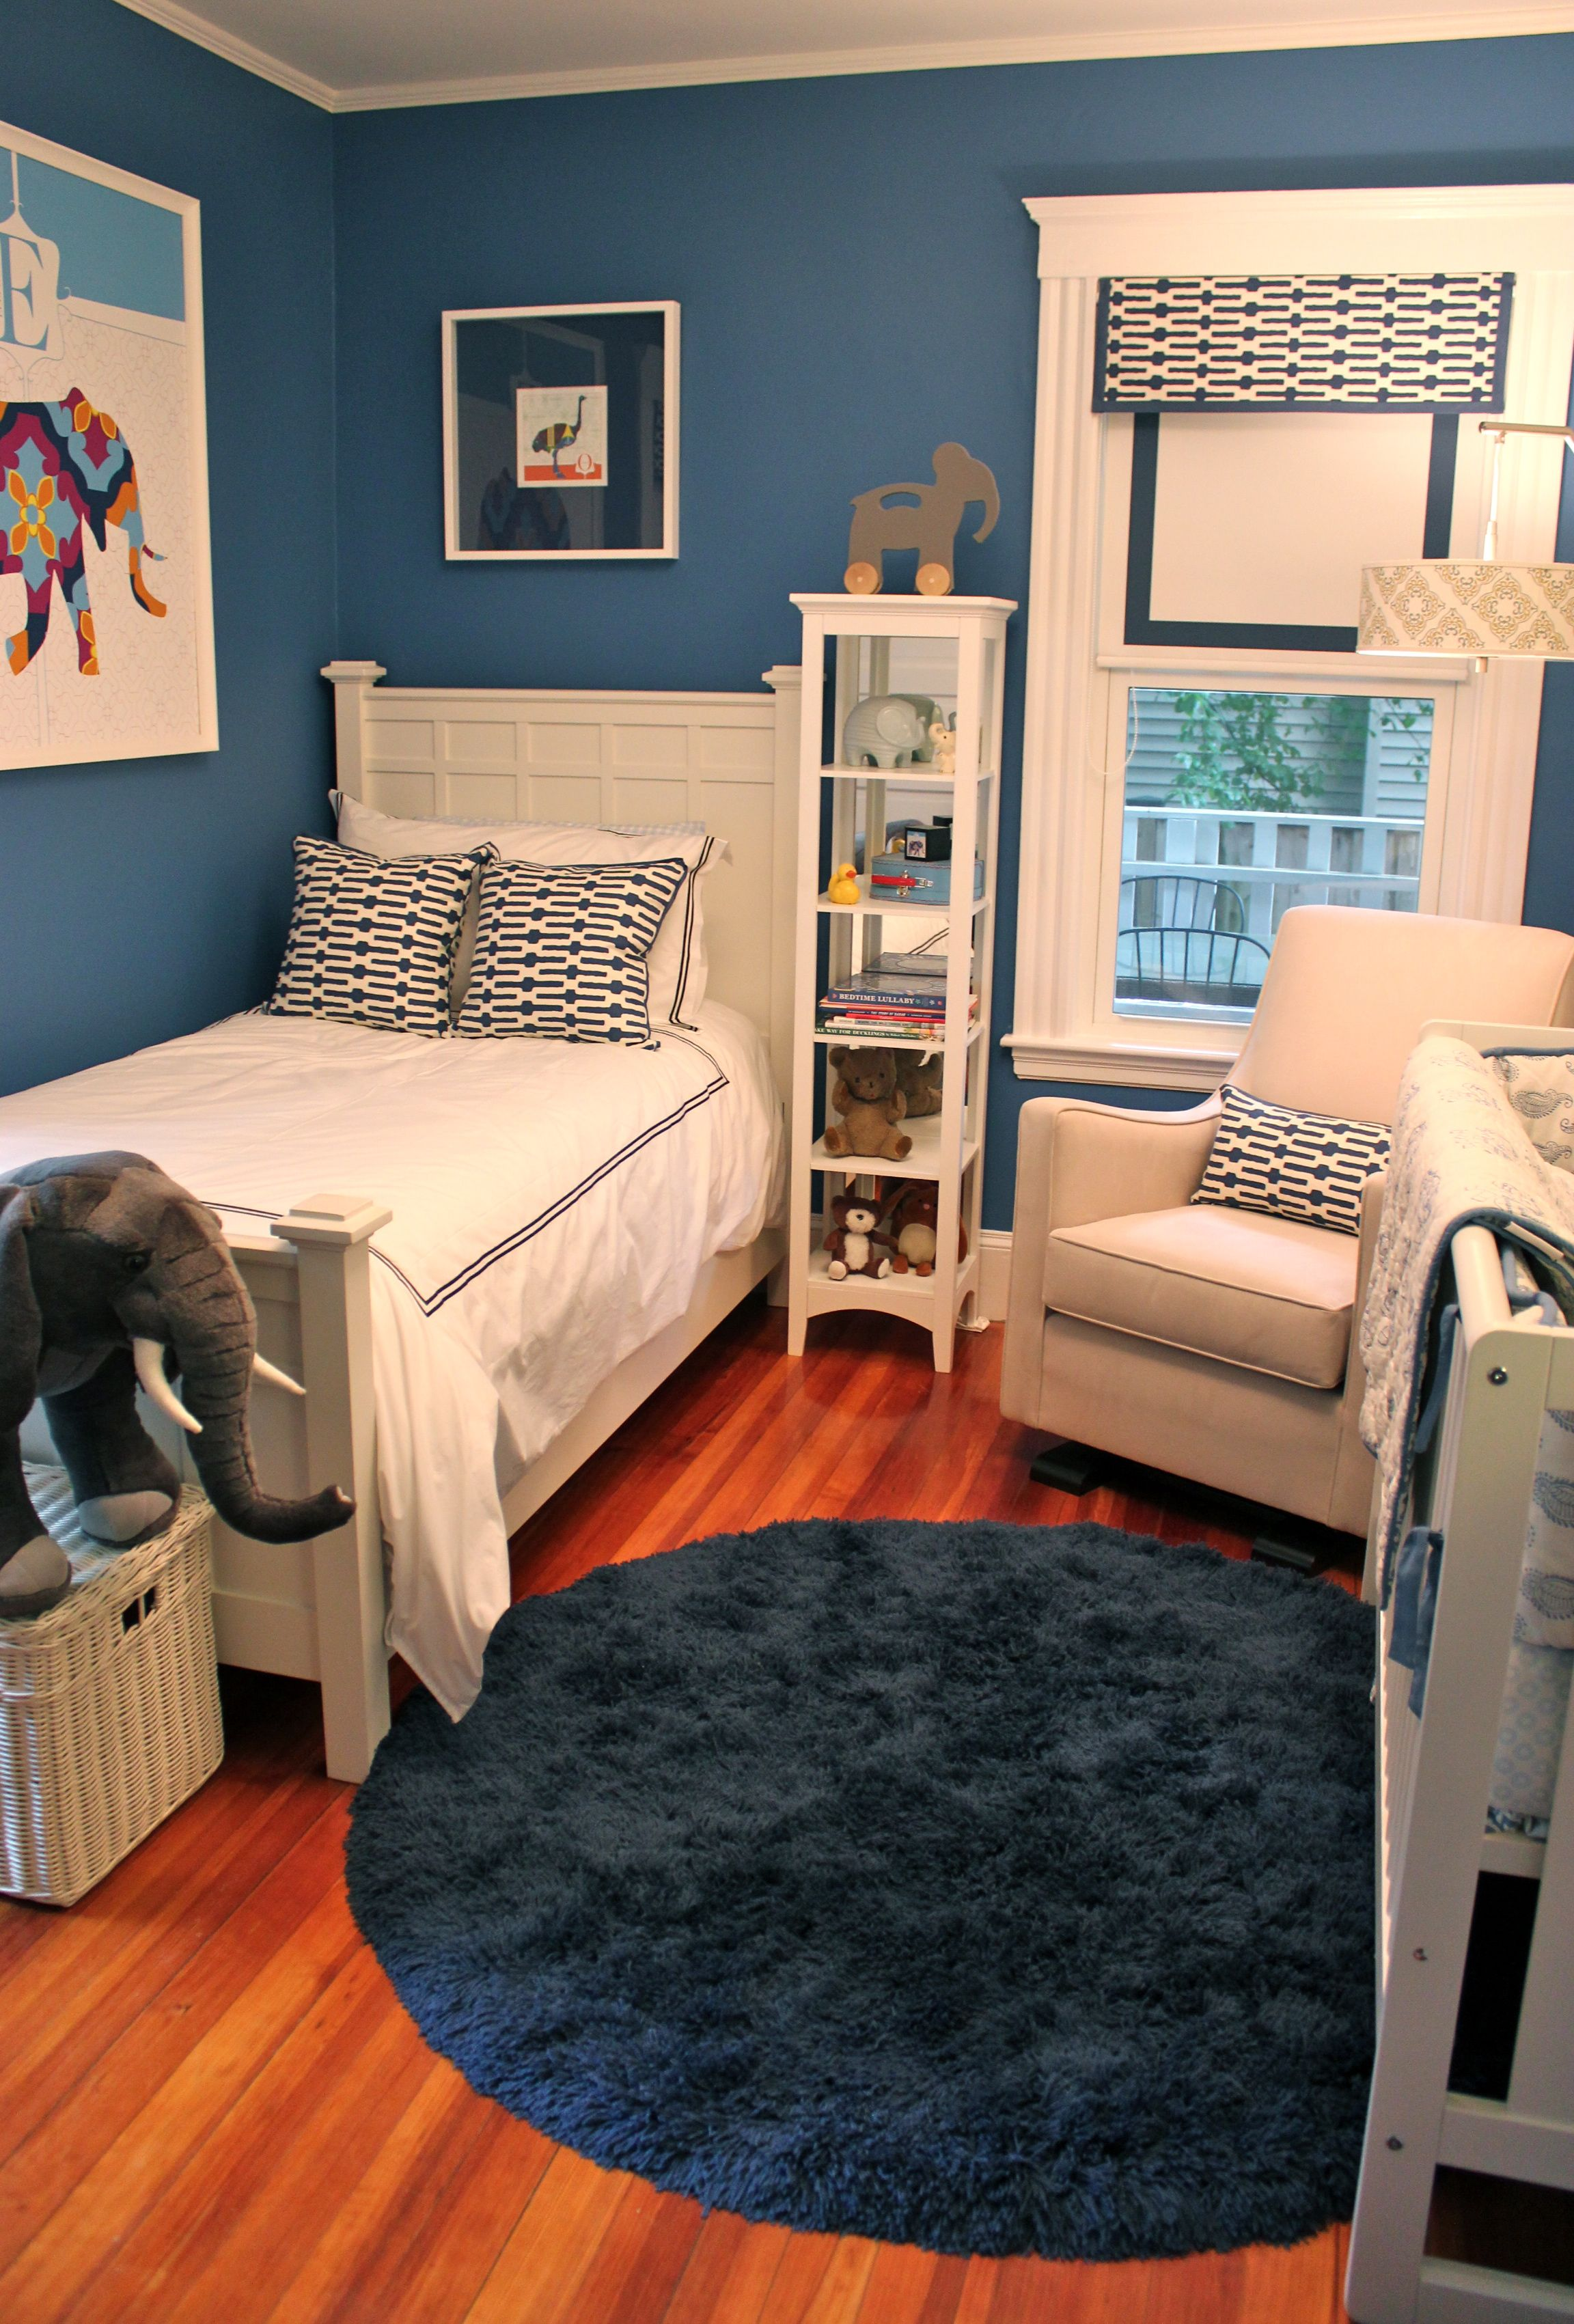 Best Shared Bedroom Shared Bedroom Small Bedroom Home Decor 640 x 480